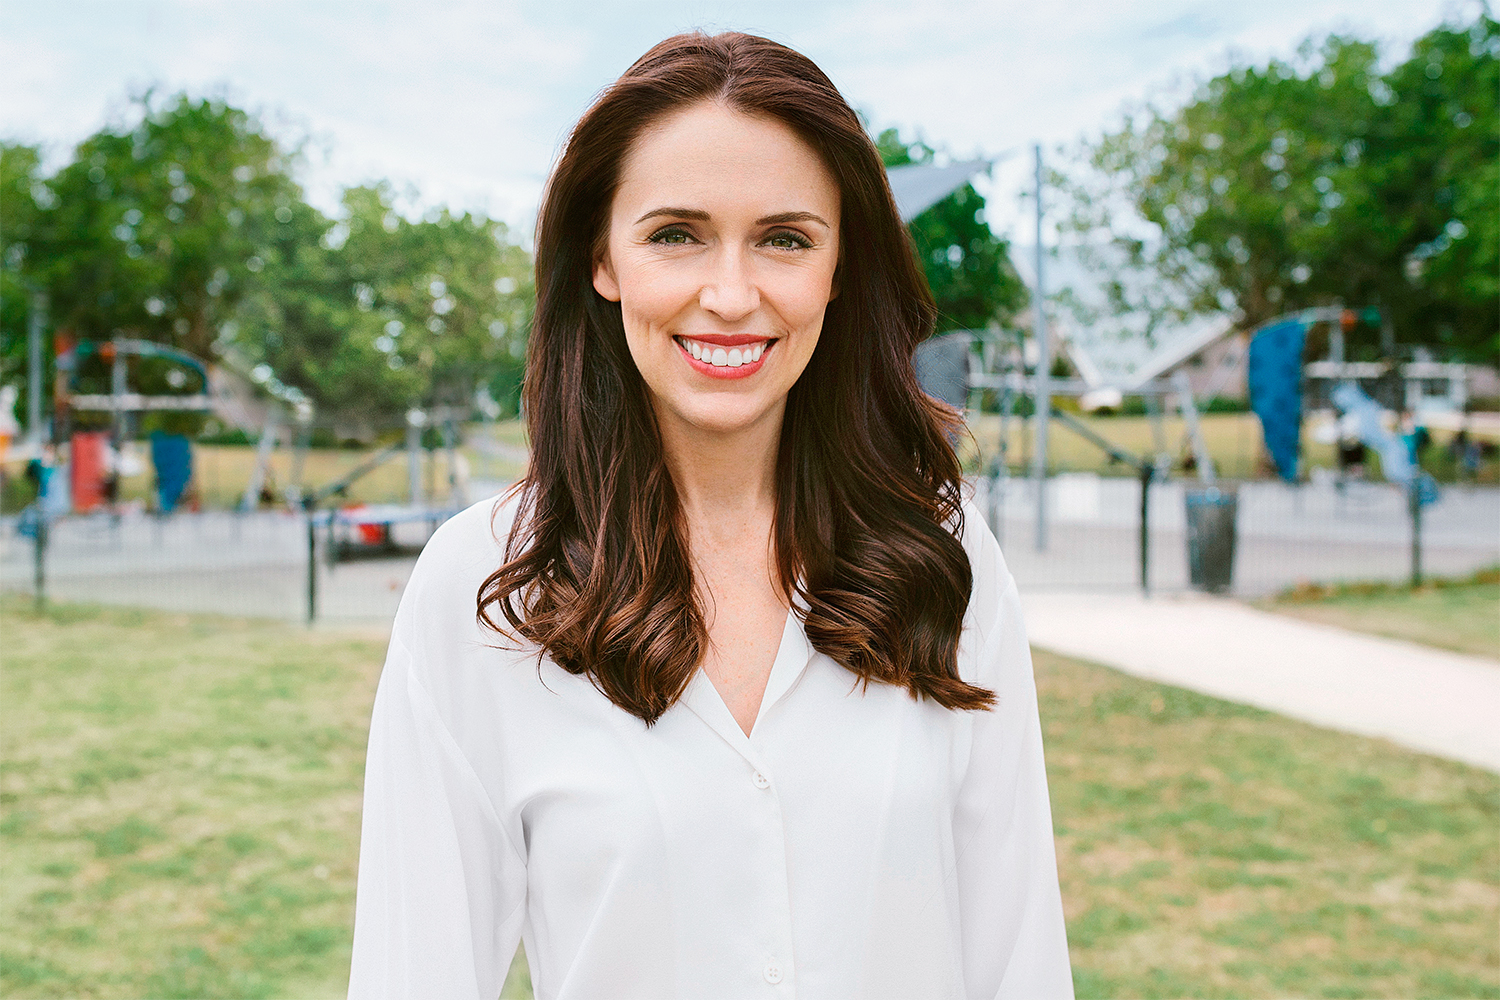 Jacinda Ardern Gallery: Jacinda Ardern On Her Pregnancy Struggles And Finding Love